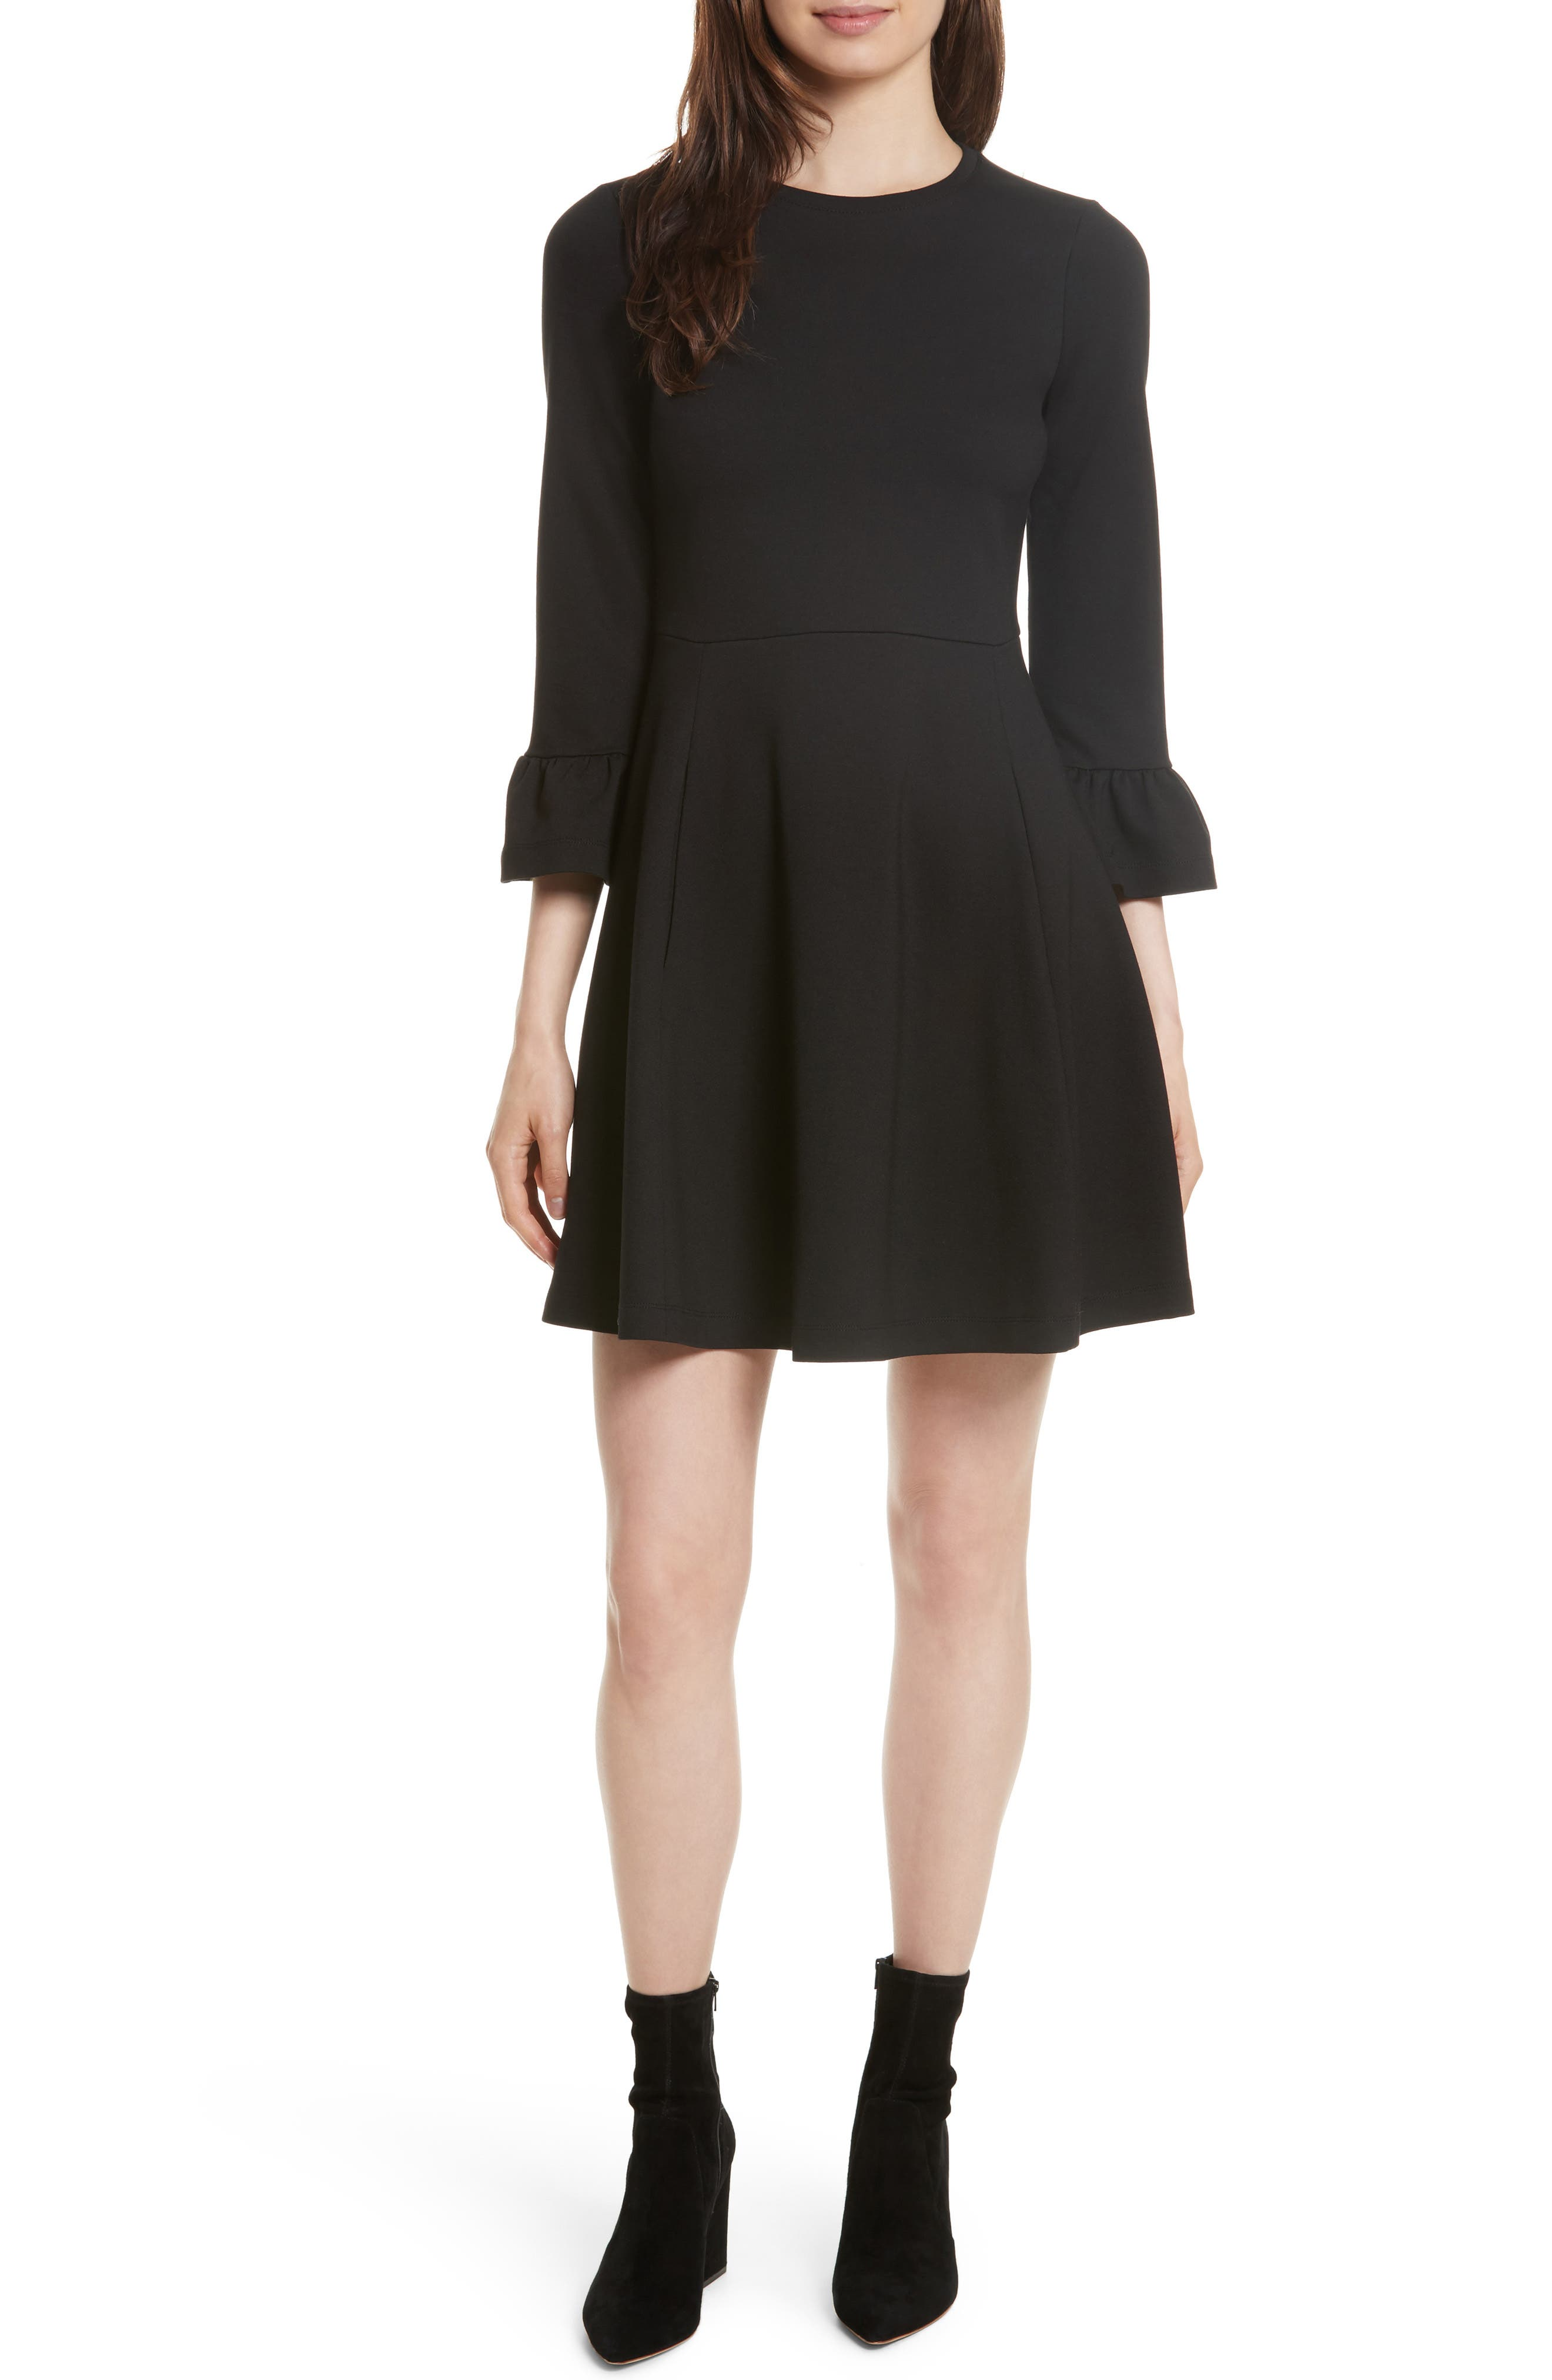 Alternate Image 1 Selected - kate spade new york ponte knit fit & flare dress